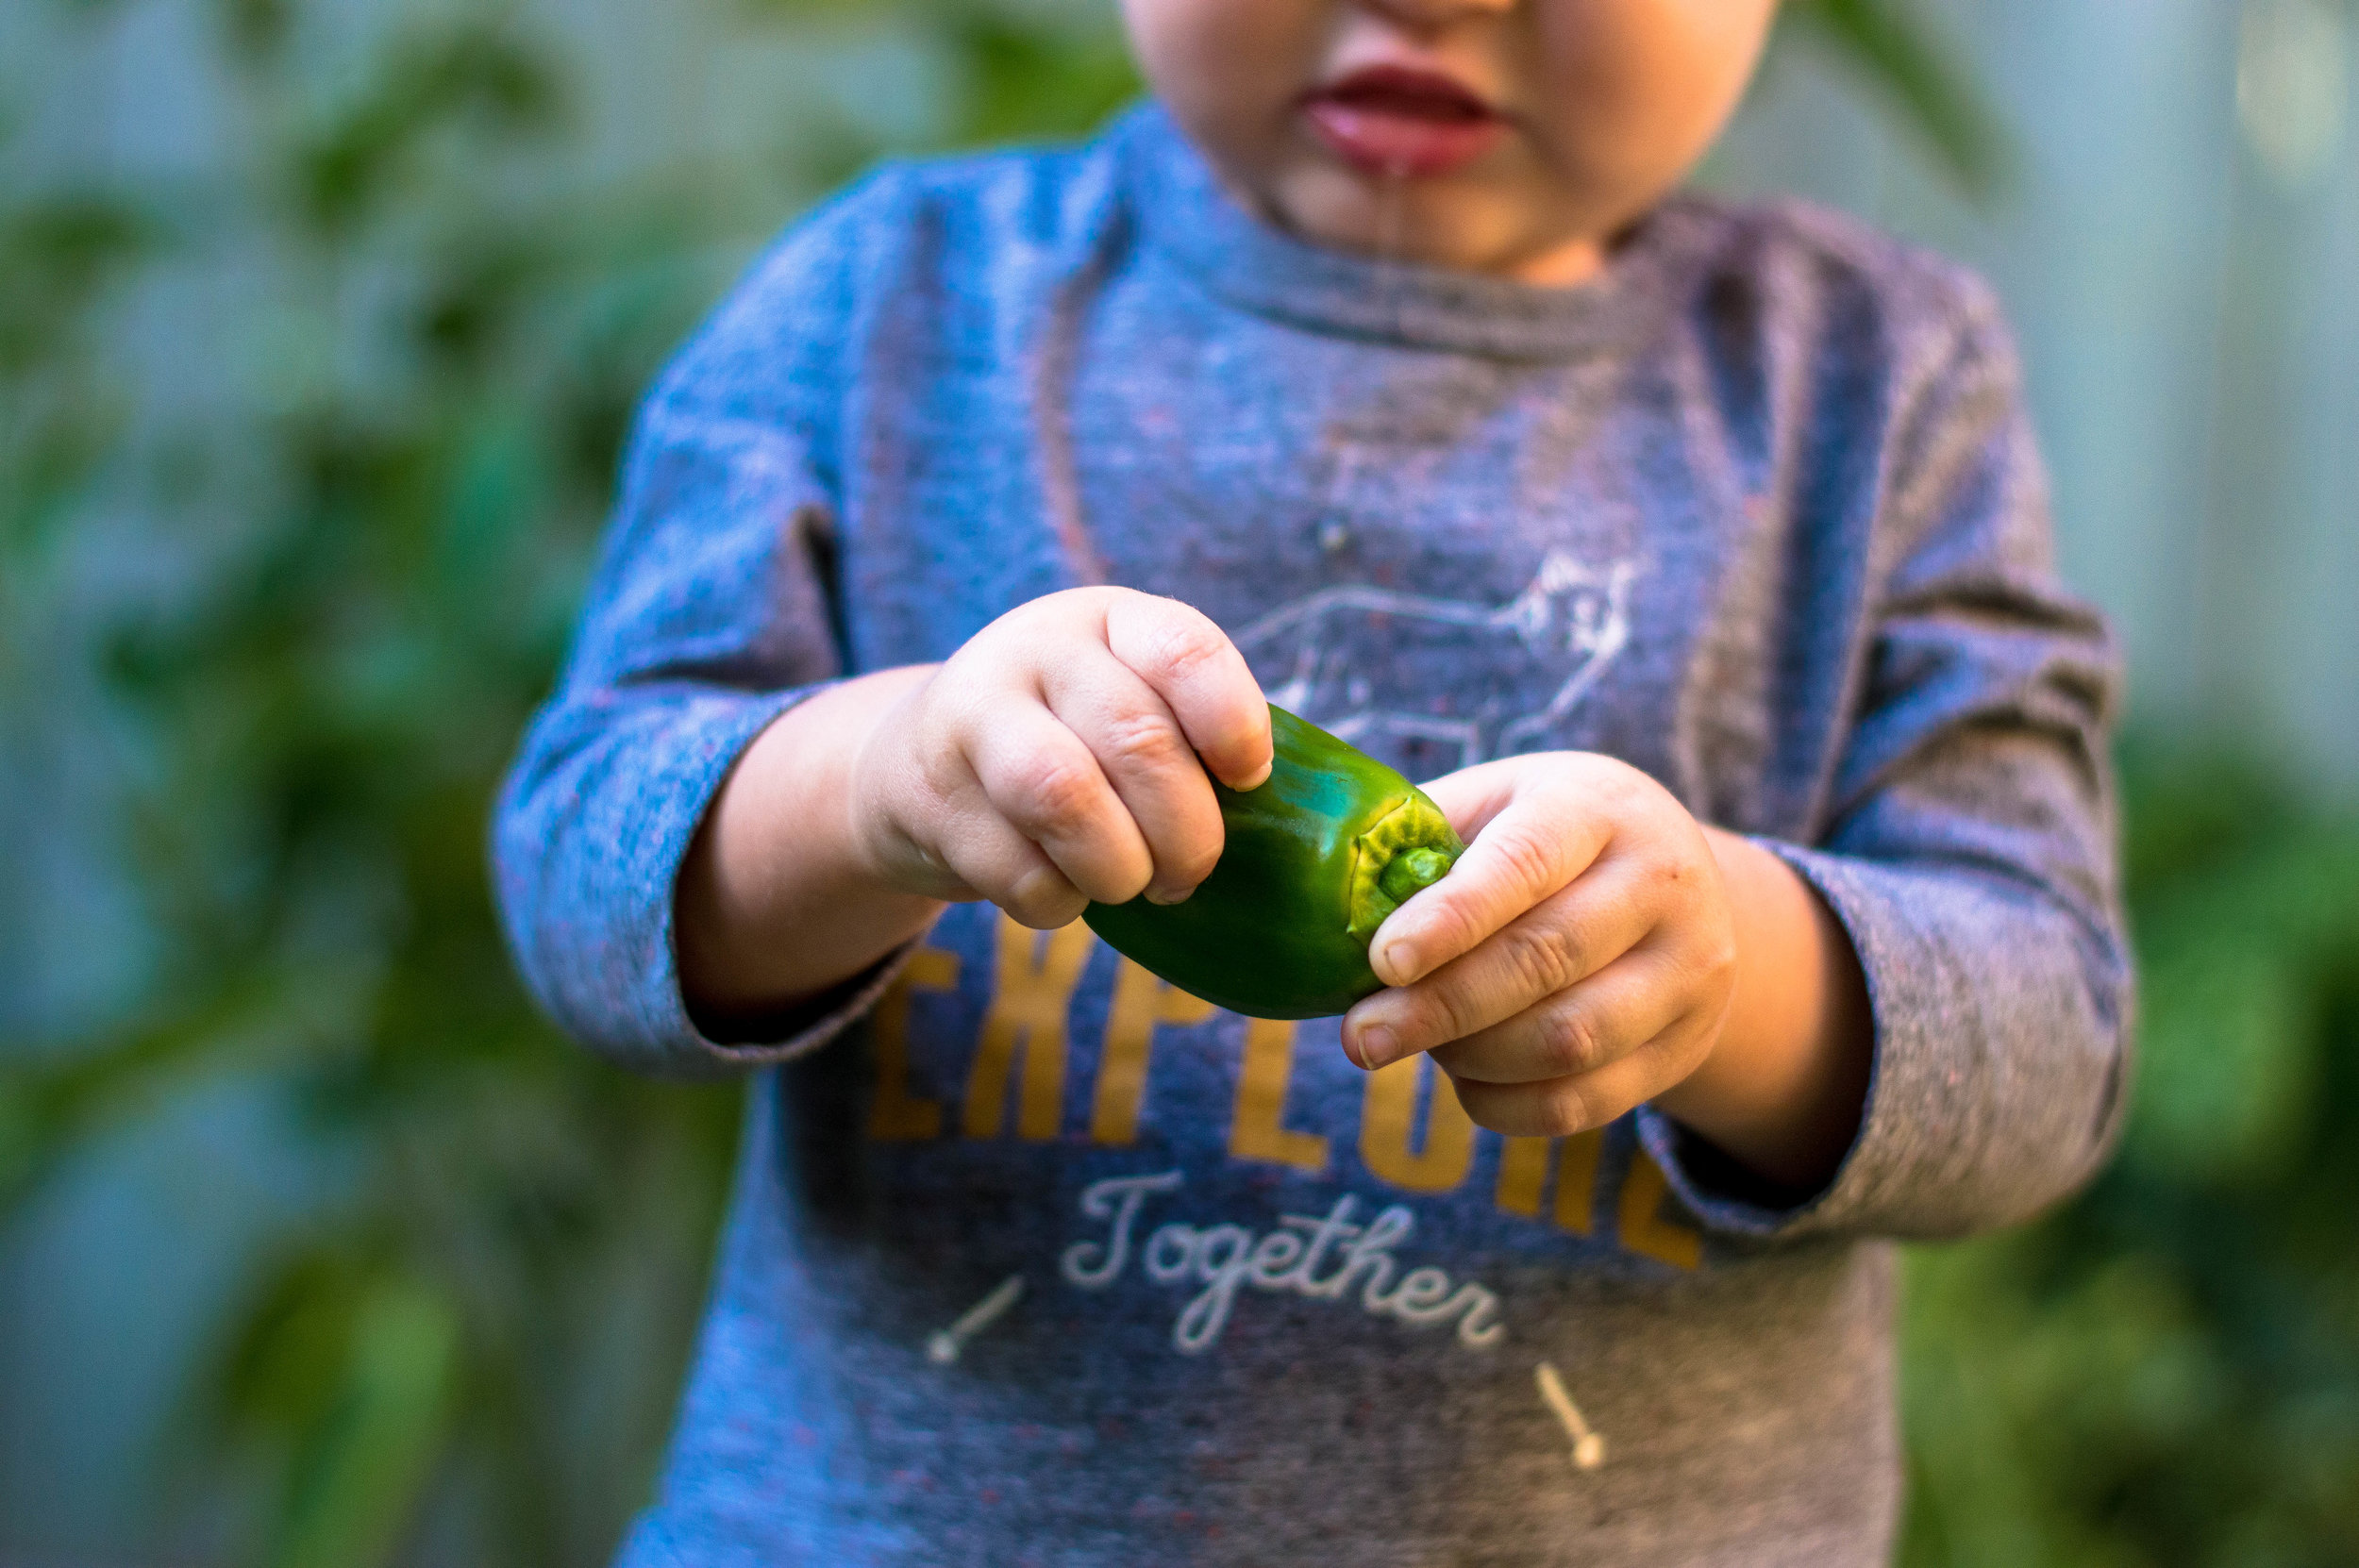 Little green lives - 5 reasons why digging a vegetable garden can make you feel like a rockstar Mummy/Human.